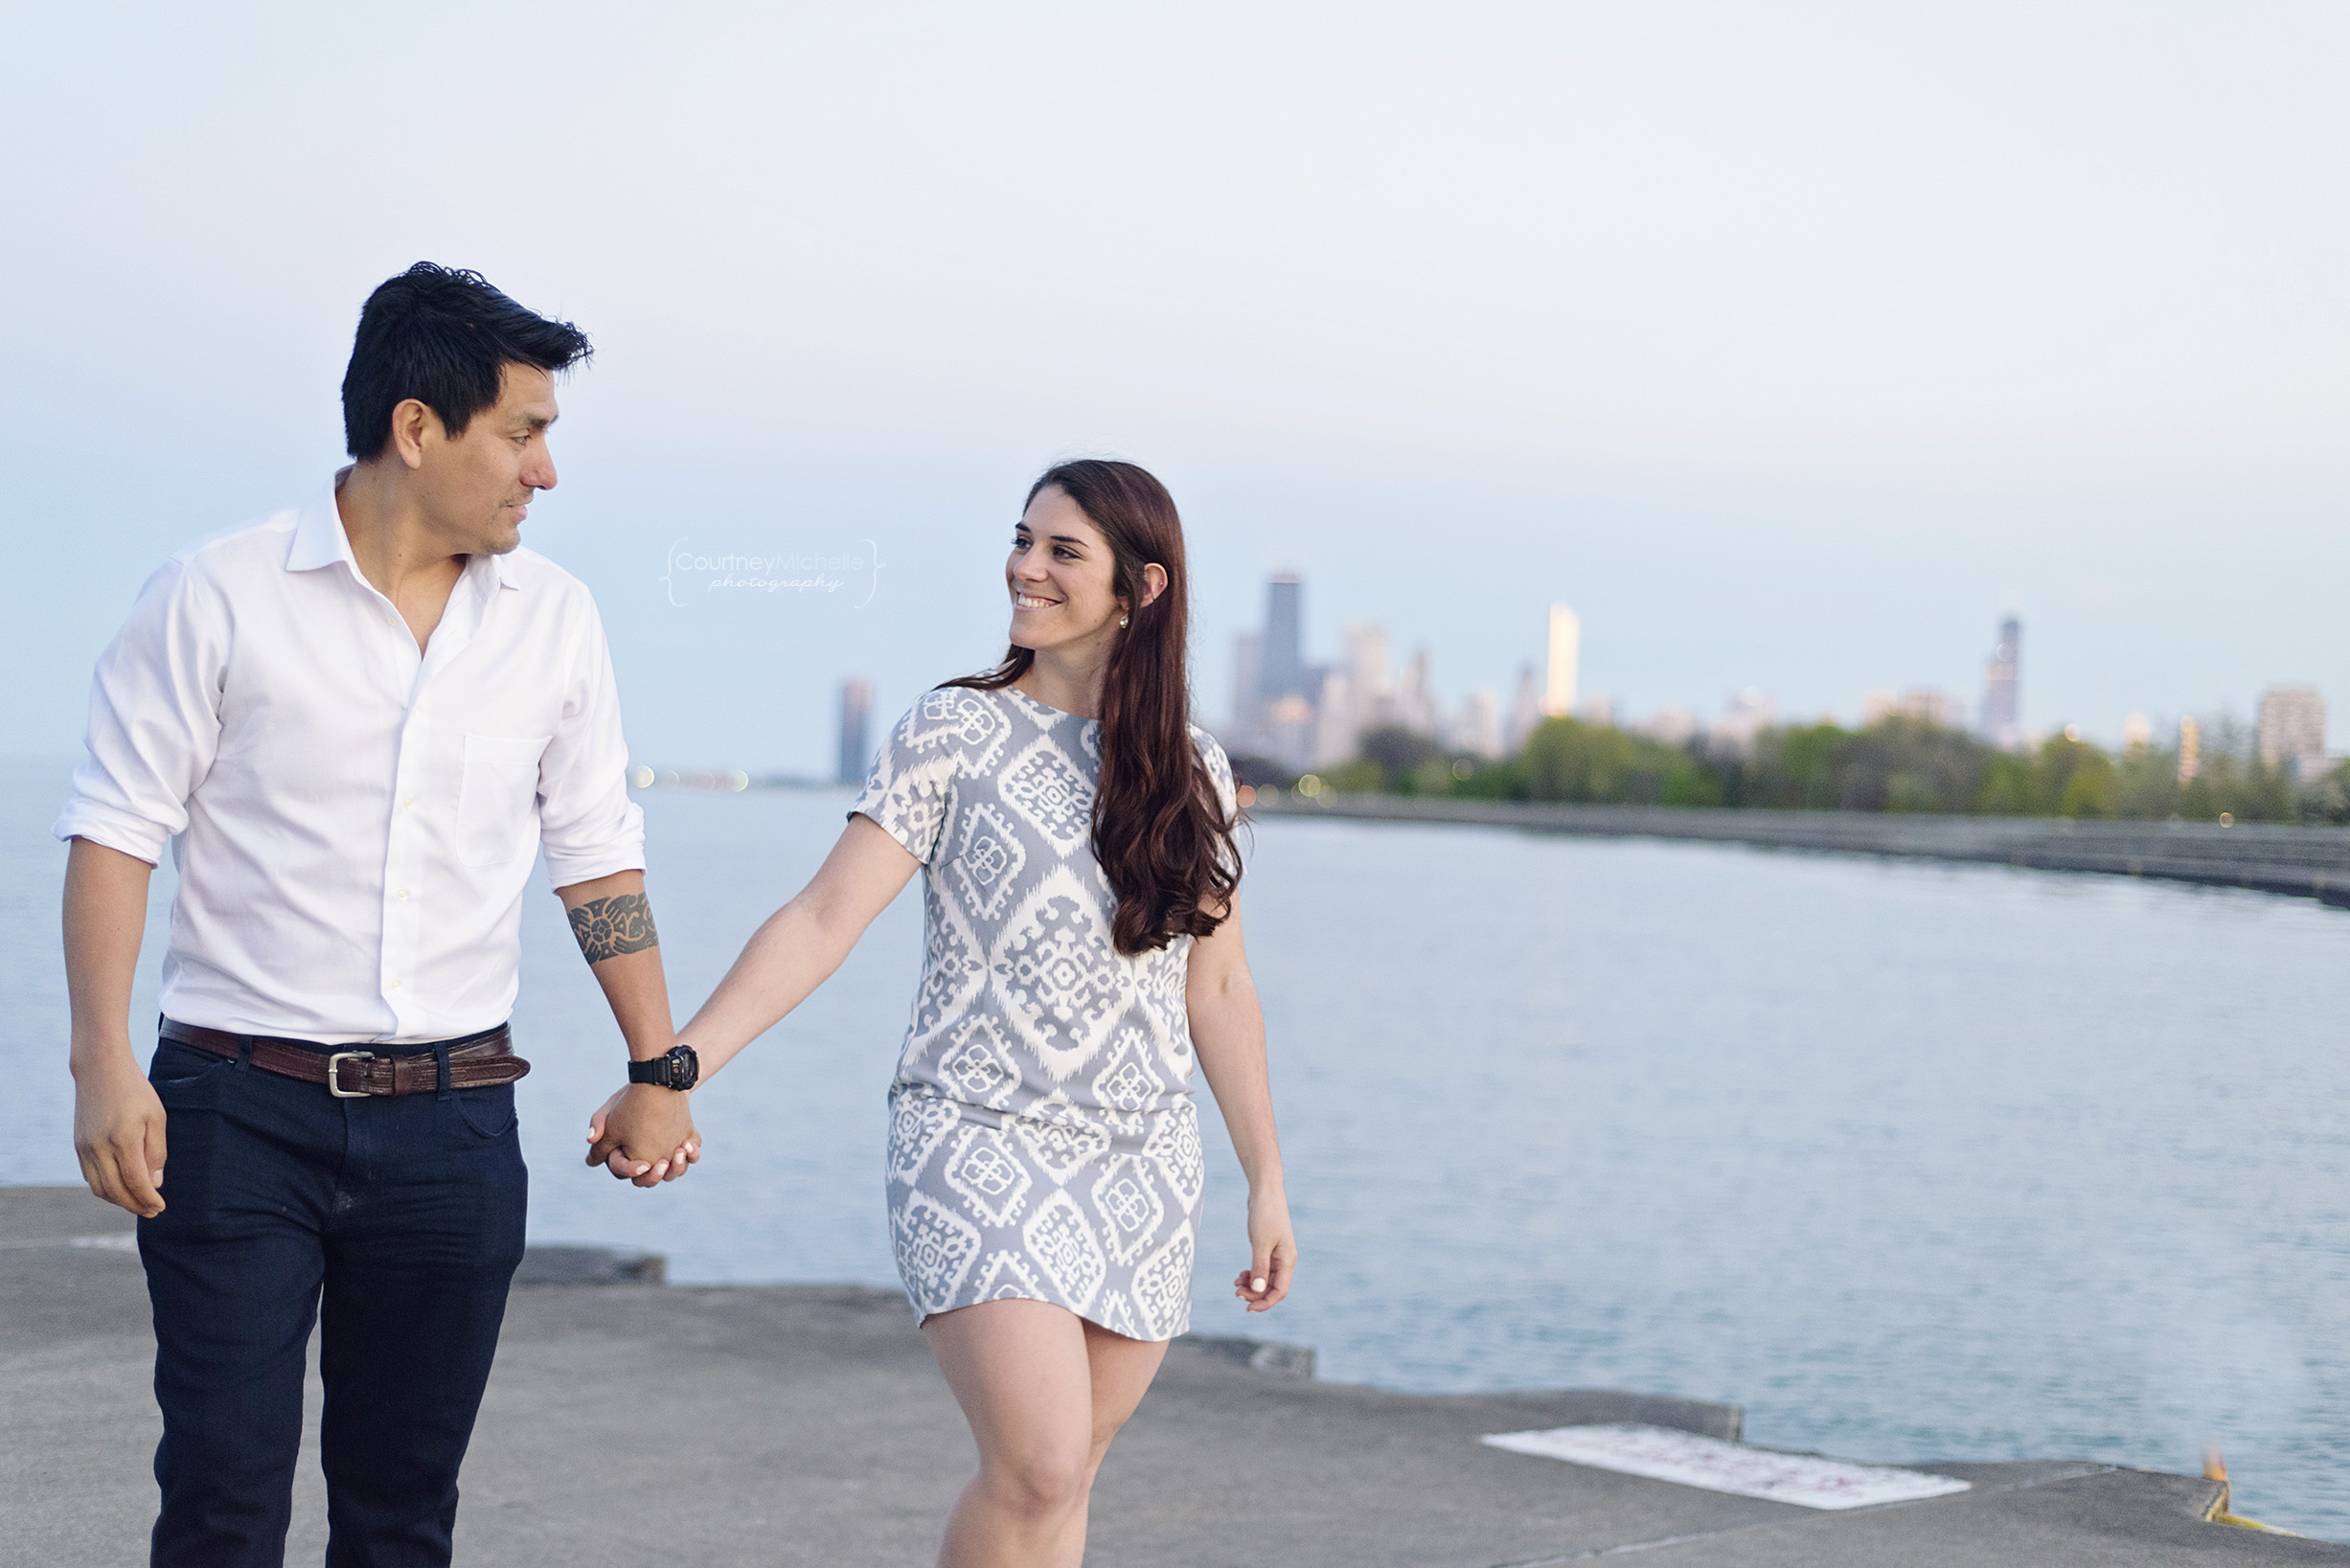 belmont-harbor-chicago-skyline-chicago-engagement-photography-by-courtney-laper©COPYRIGHTCMP-edit-1442.jpg